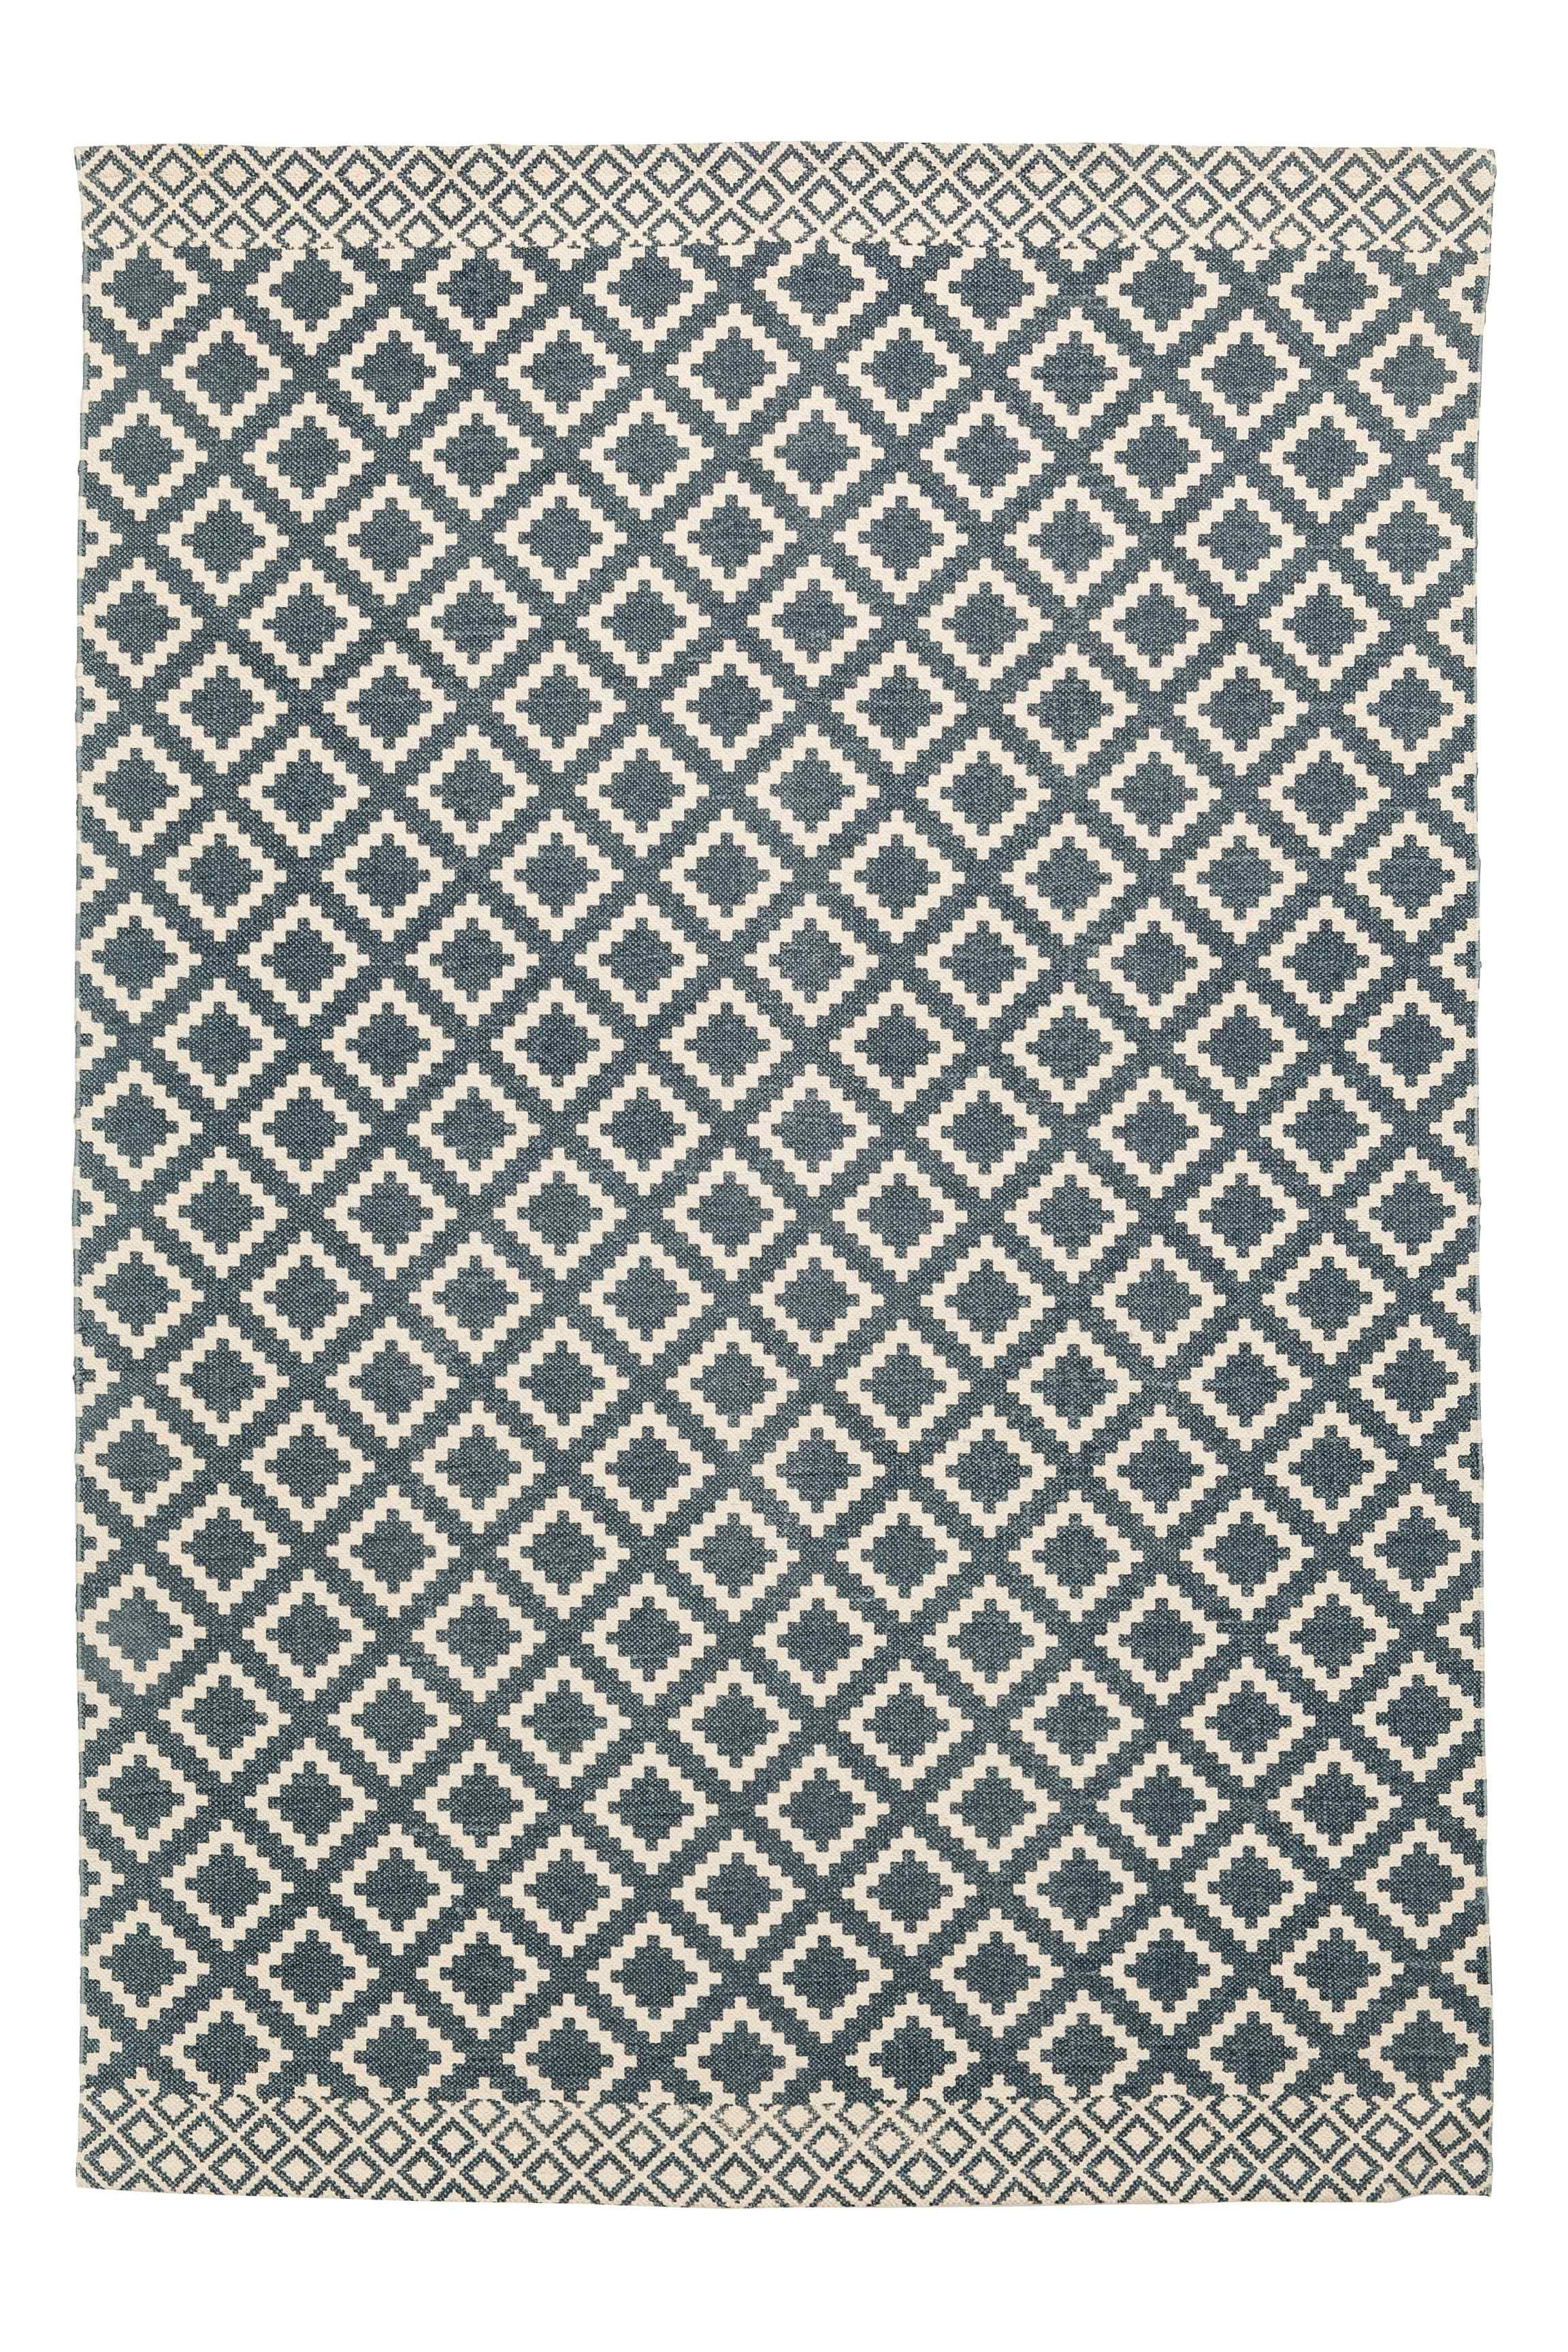 Patterned Cotton Rug Natural White Dark Blue Home All H M